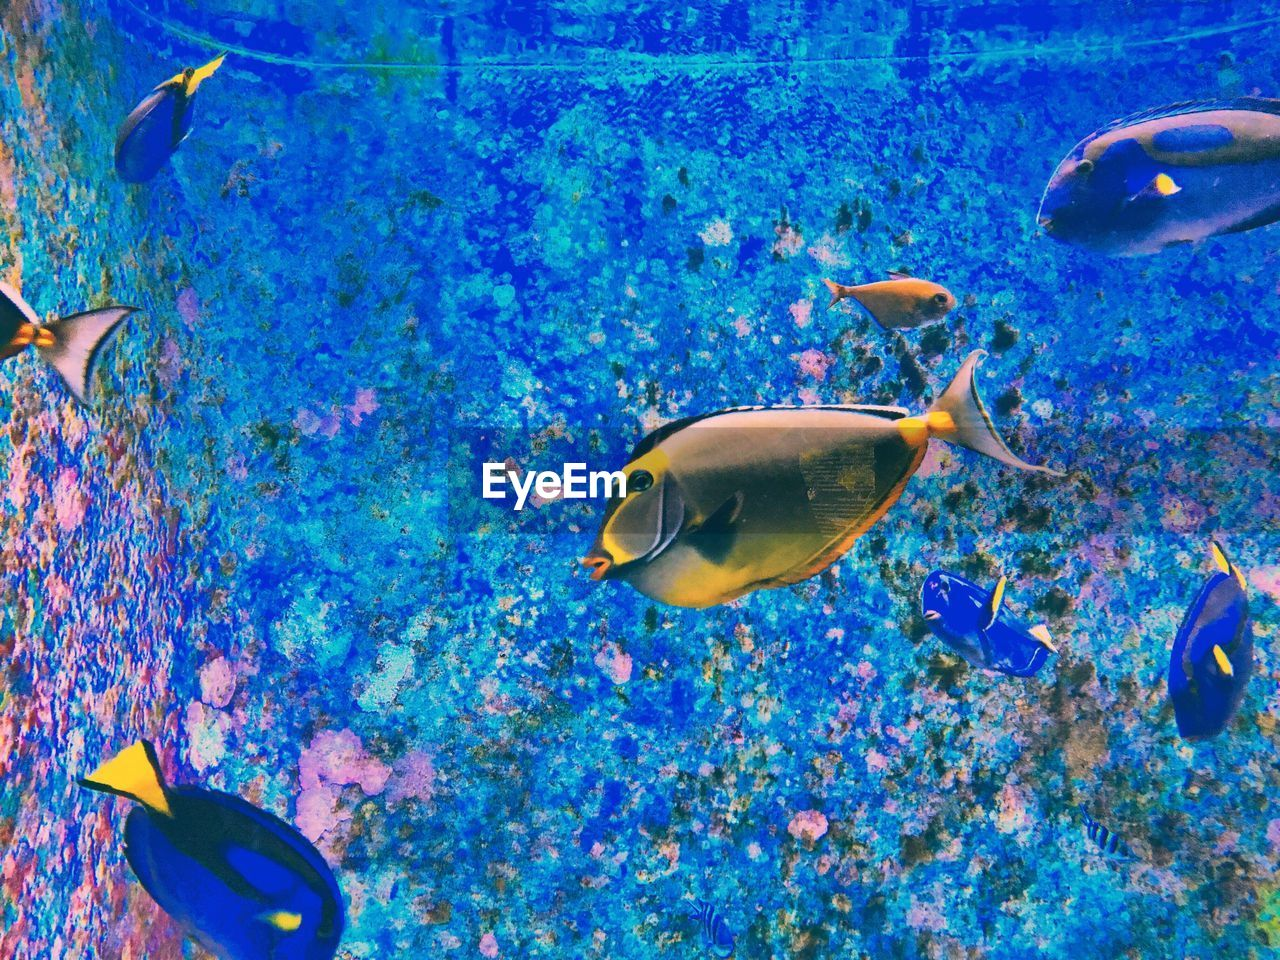 water, fish, swimming, animal themes, sea life, underwater, animals in the wild, large group of animals, nature, no people, multi colored, blue, aquarium, beauty in nature, undersea, indoors, close-up, day